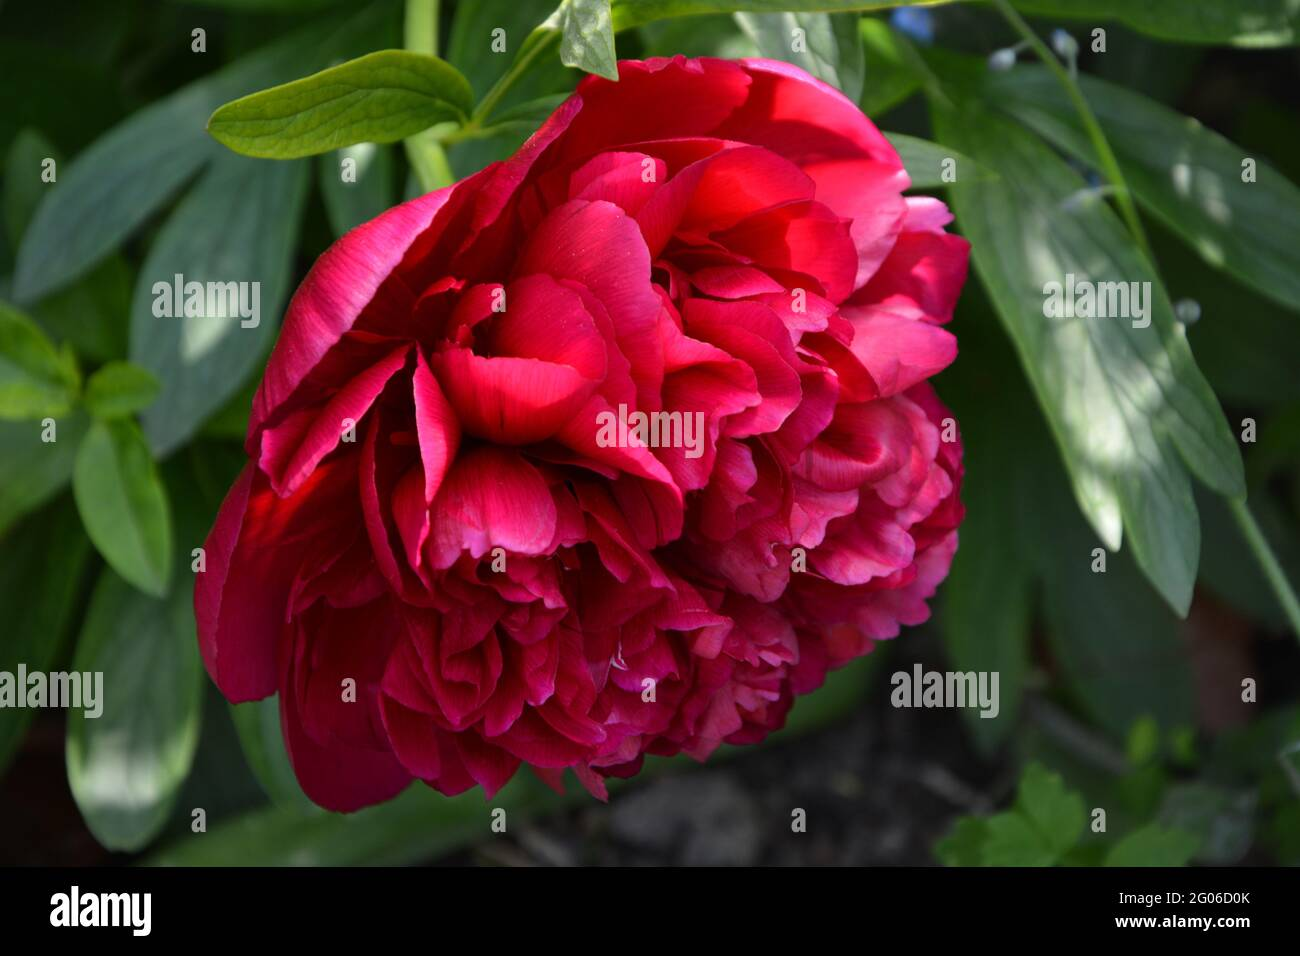 Paeonia Officinalis Rubra Plena, Red Peony, Cambridge UK, Purely Beautiful and Peaceful Floral Space Stock Photo